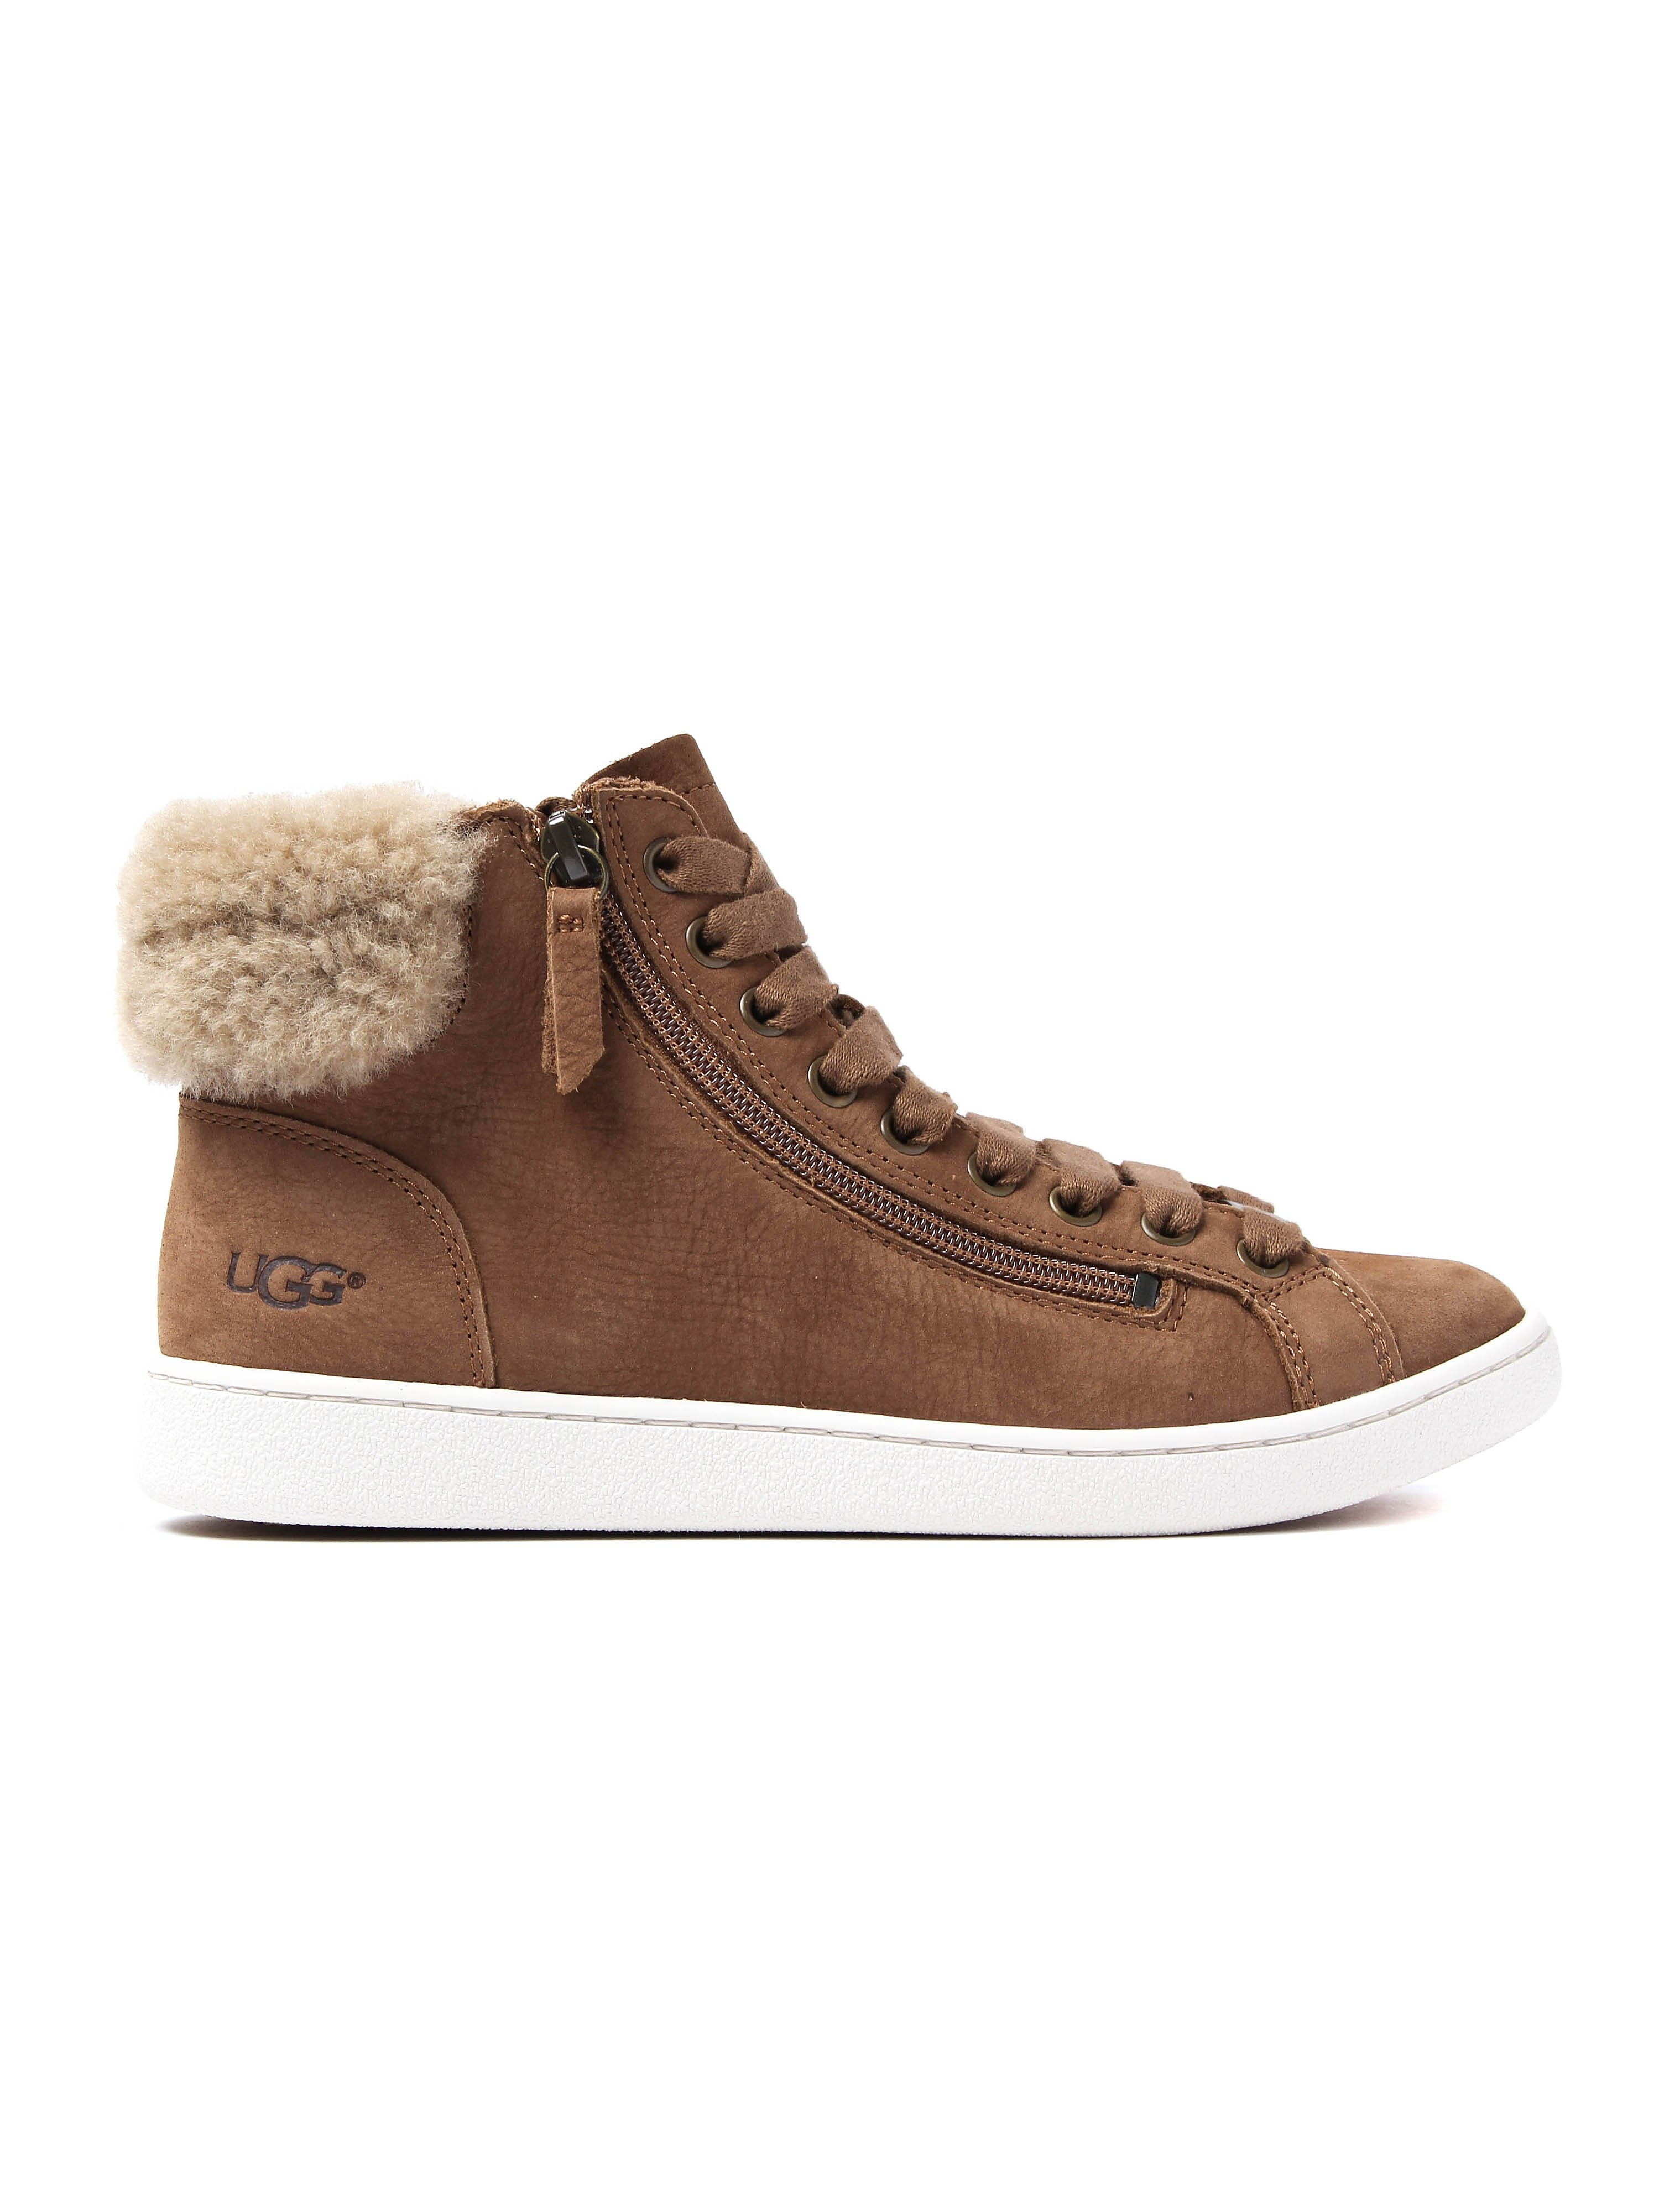 UGG Women's Olive Trainers - Chestnut